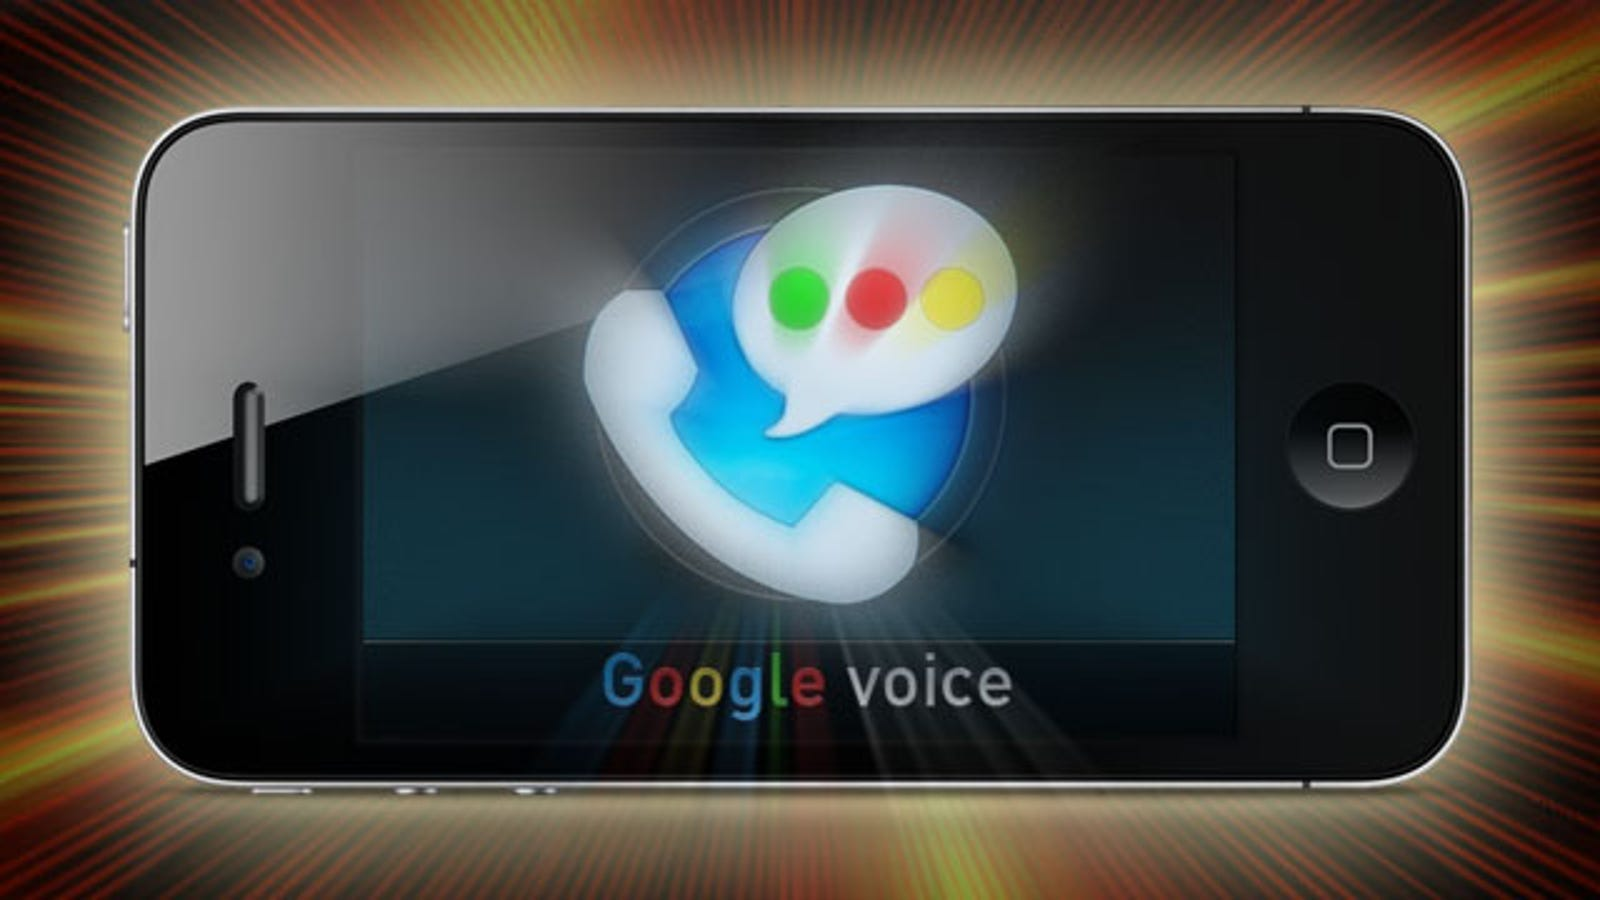 Get the Most Out of Google Voice on Your iPhone